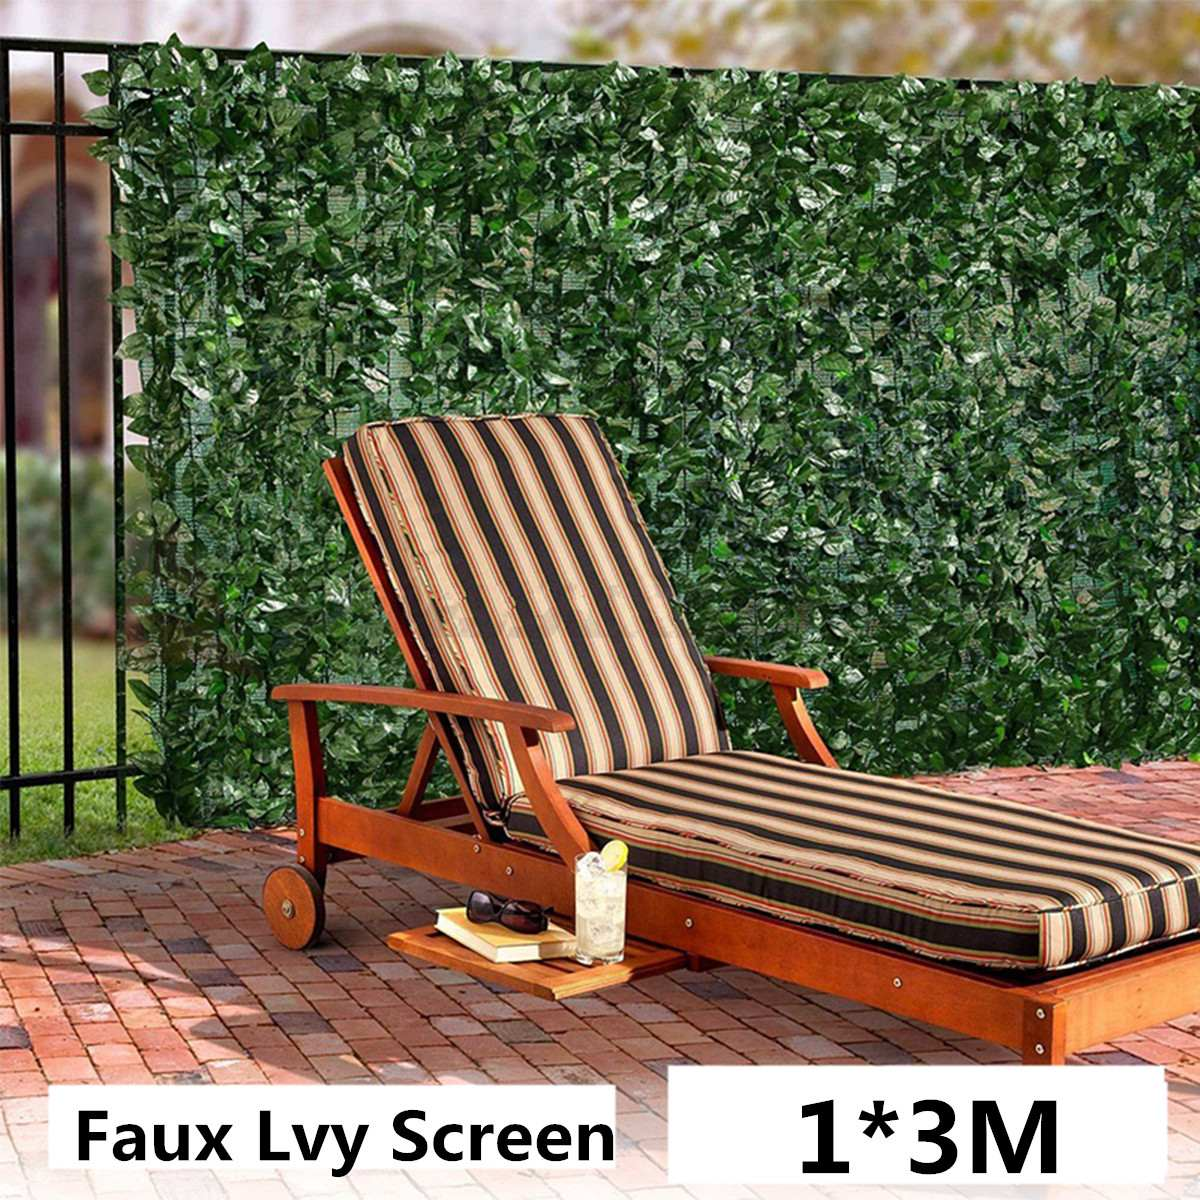 1x3M Plant Wall Artificial Lawn Boxwood Hedge Garden Backyard Home Decor Simulation Grass Turf Rug Lawn Outdoor Flower wall hugo boss часы hugo boss hb 1513449 коллекция classico round